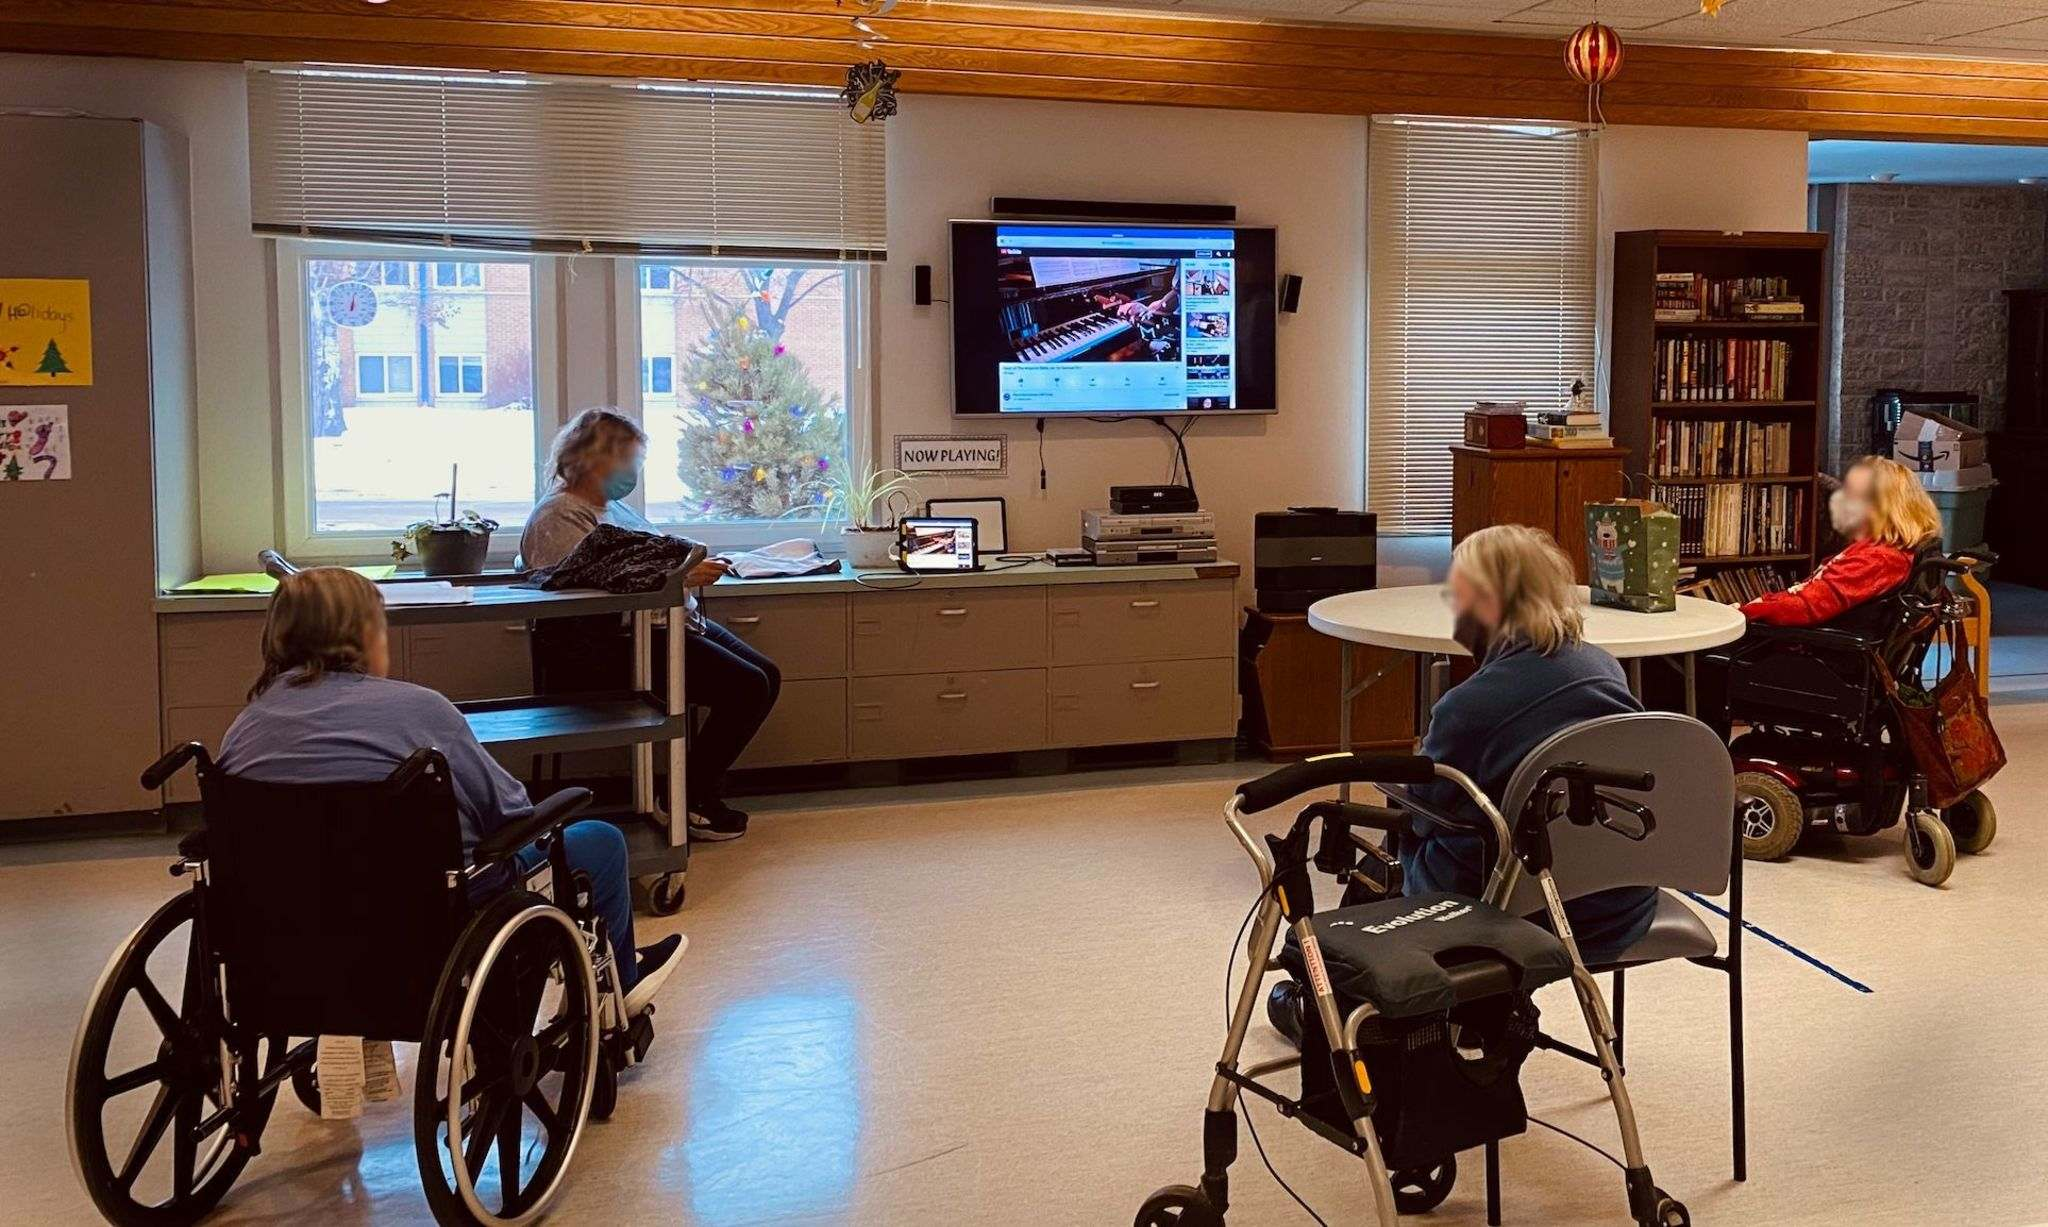 Residents at Luther Home in Winnipeg enjoy a physically-distanced viewing of a piano recital themed Home for the Holidays to complement their Ukrainian Christmas festivities, at test run of Sharing is Caring, thanks to piano teacher Corey Francis and his students Jan. 7. (Submitted)</p></p>